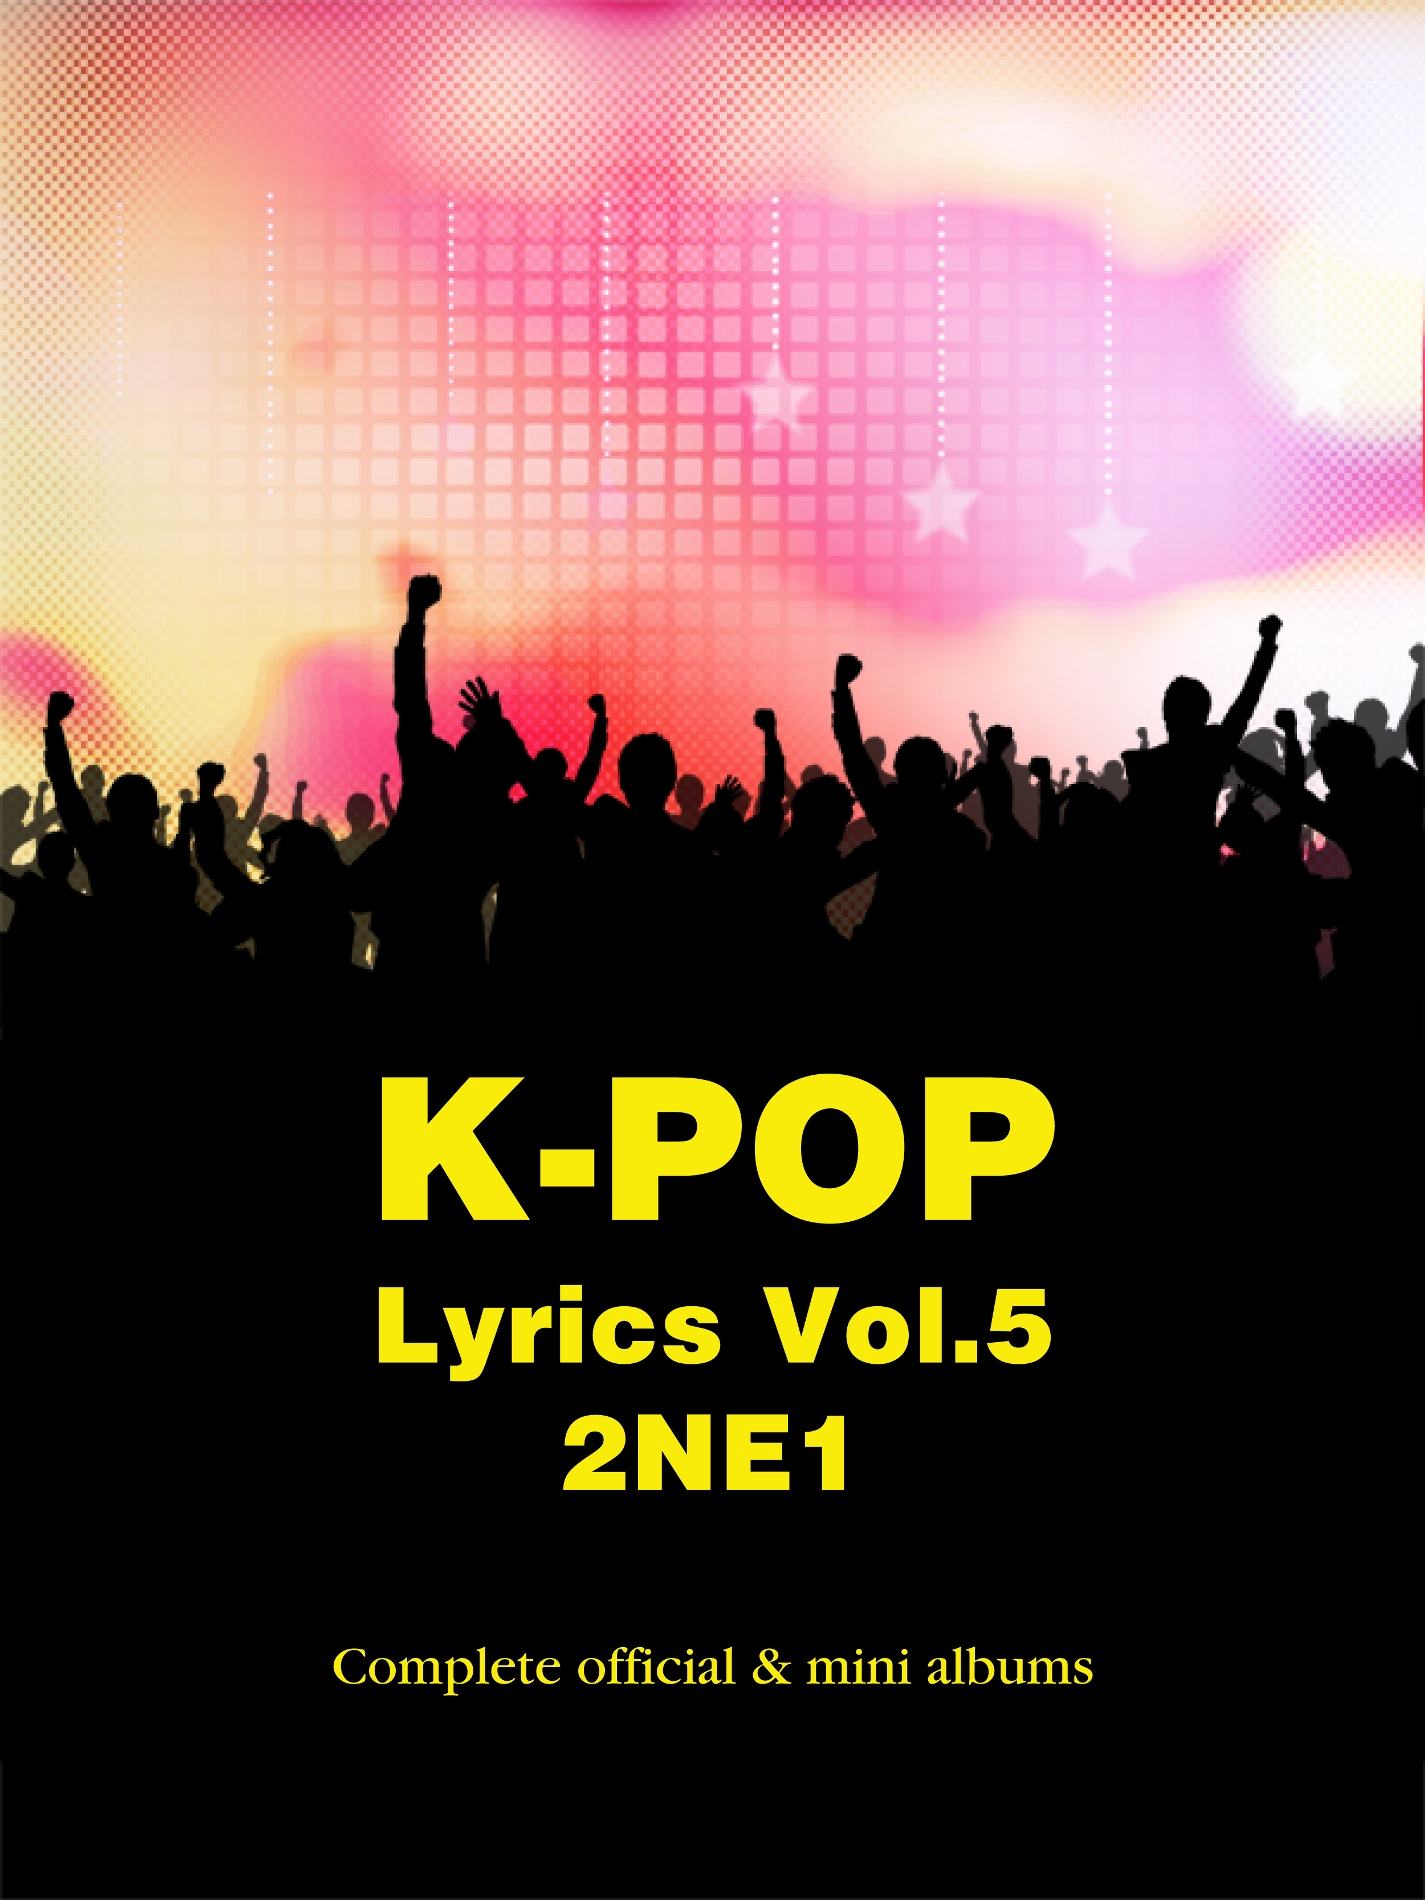 K-Pop Lyrics Vol.5 - 2NE1 (2nd Edition)